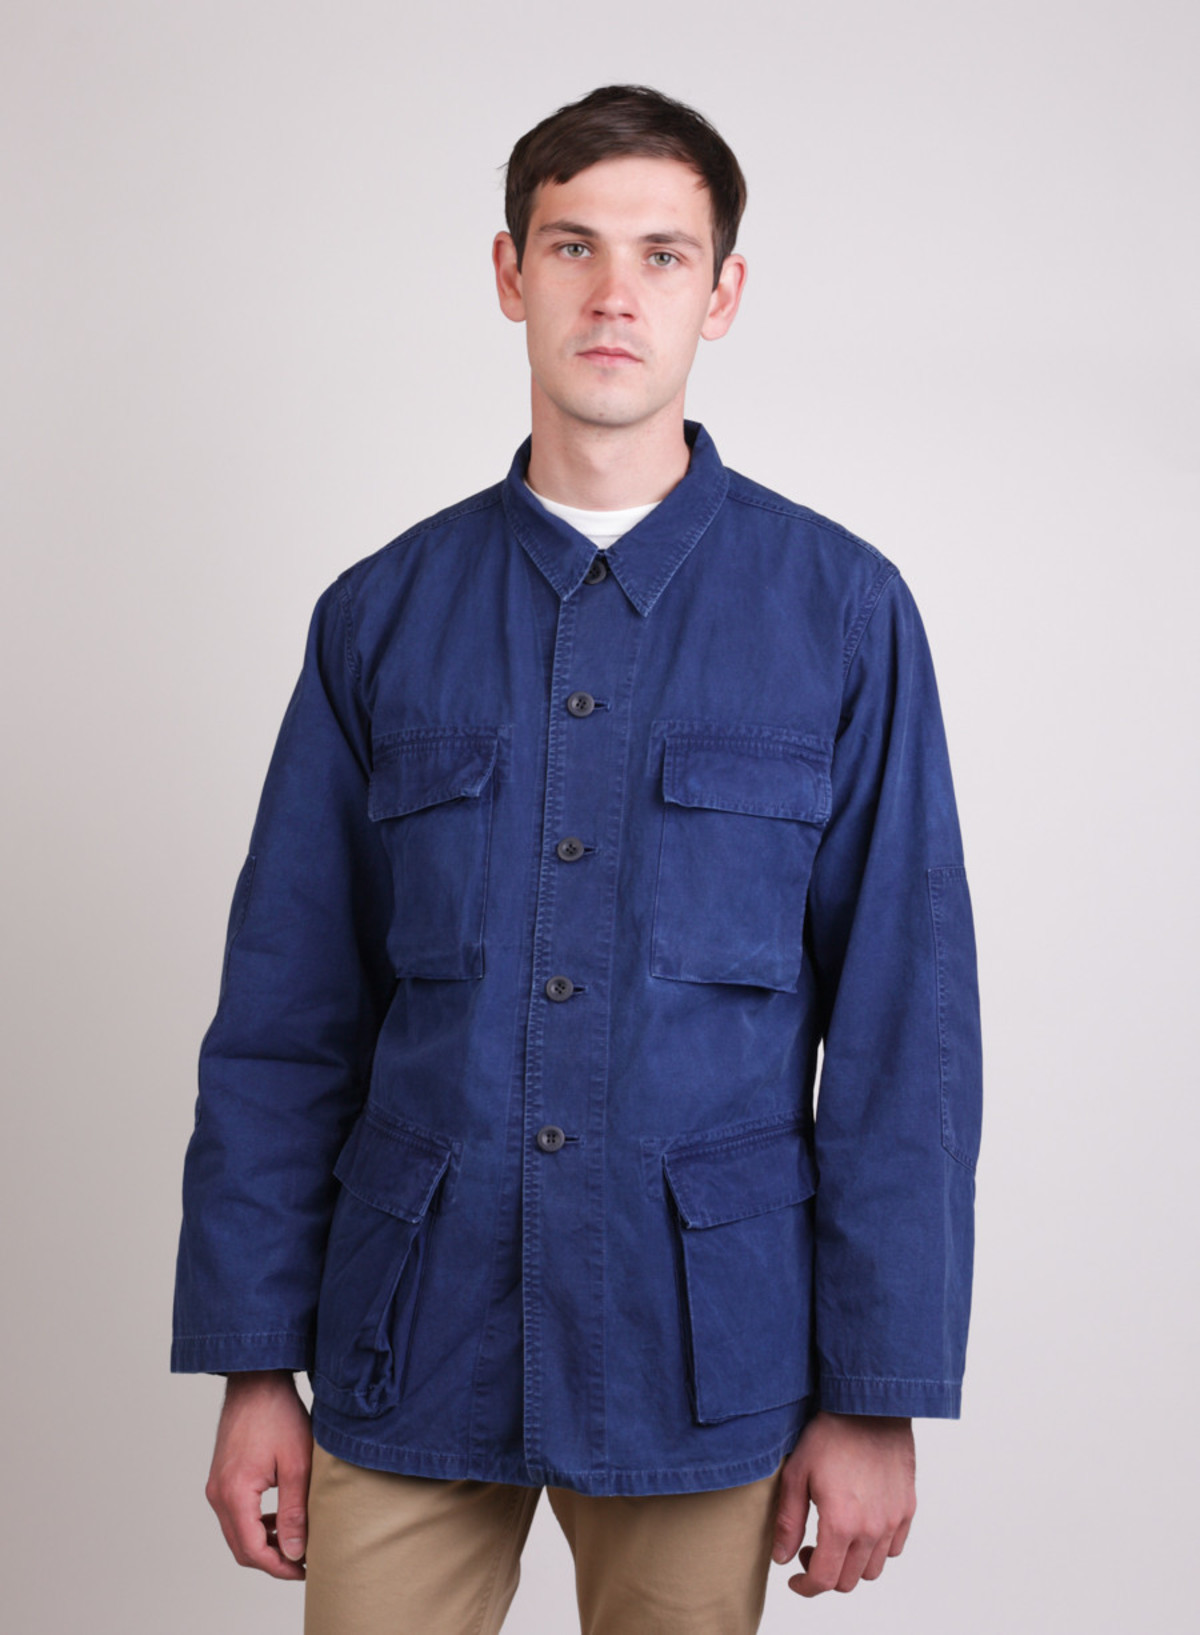 Blue Blue Japan Indigo Hand Dyed Cotton Poplin Four Pocket Shirt ...